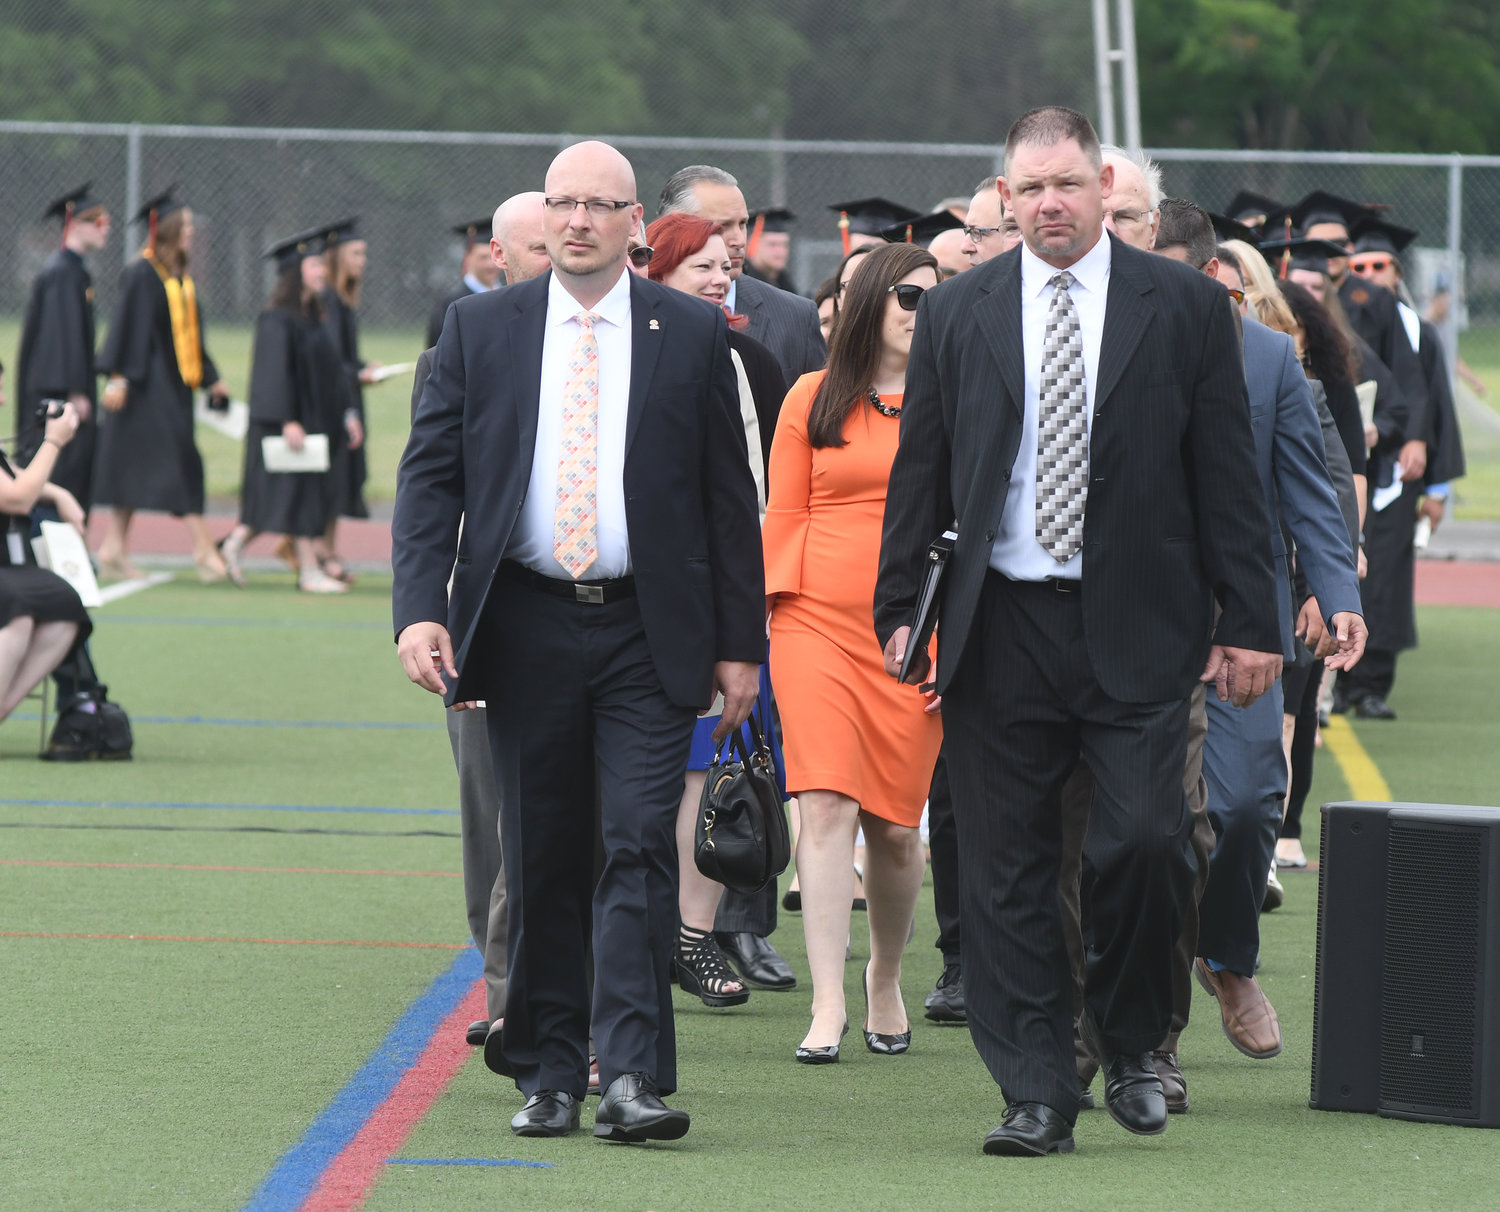 HERE COMES THE PROCESSIONAL — Rome school district Superintendent Peter C. Blake, at left, and Rome Free Academy Principal Brian LeBaron lead the processional for the start of Rome Free Academy's 150th commencement Saturday.